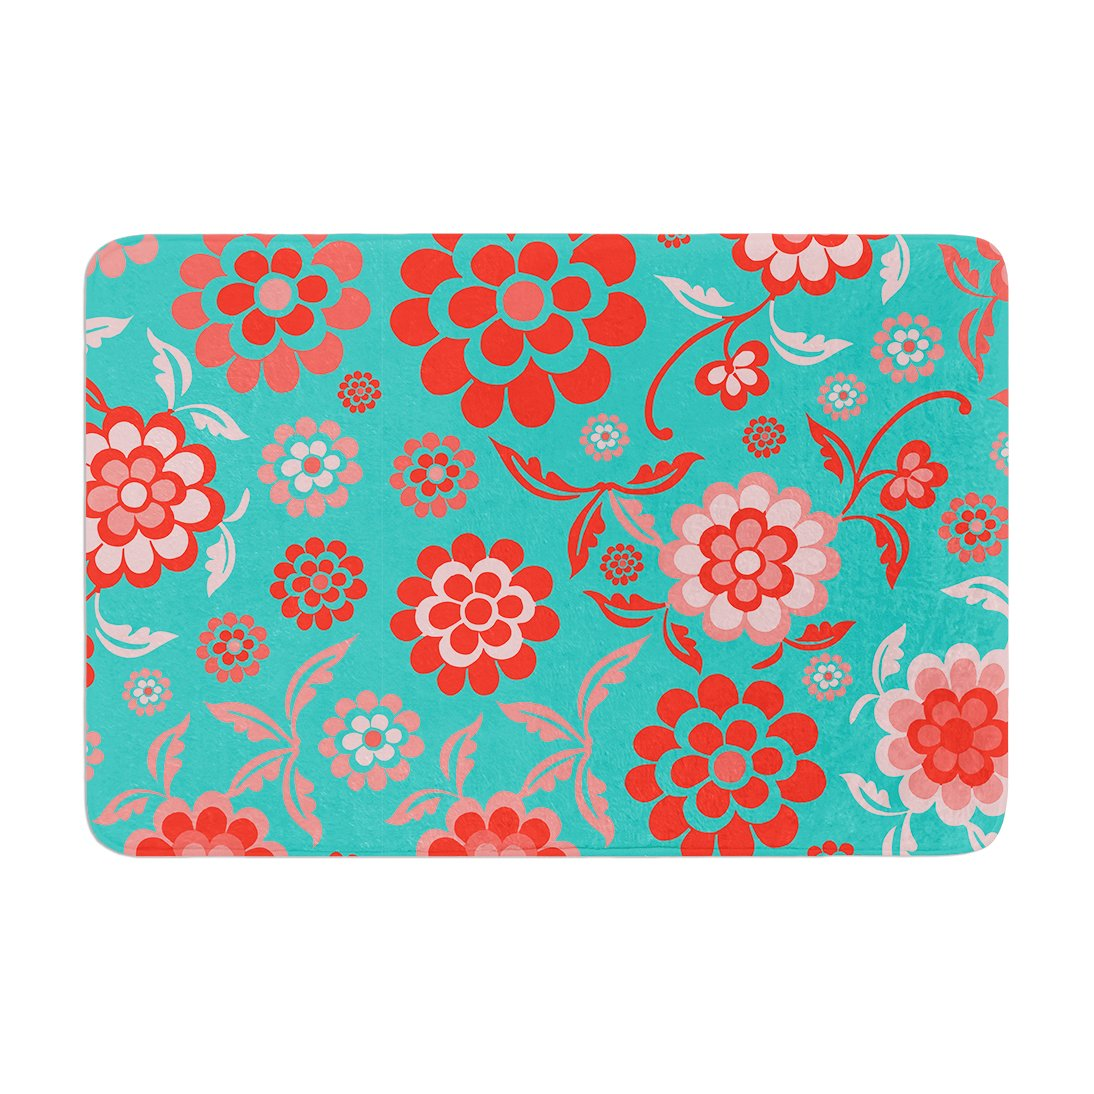 Kess InHouse Nicole Ketchum Cherry Floral Sea Memory Foam Bath Mat 17 by 24